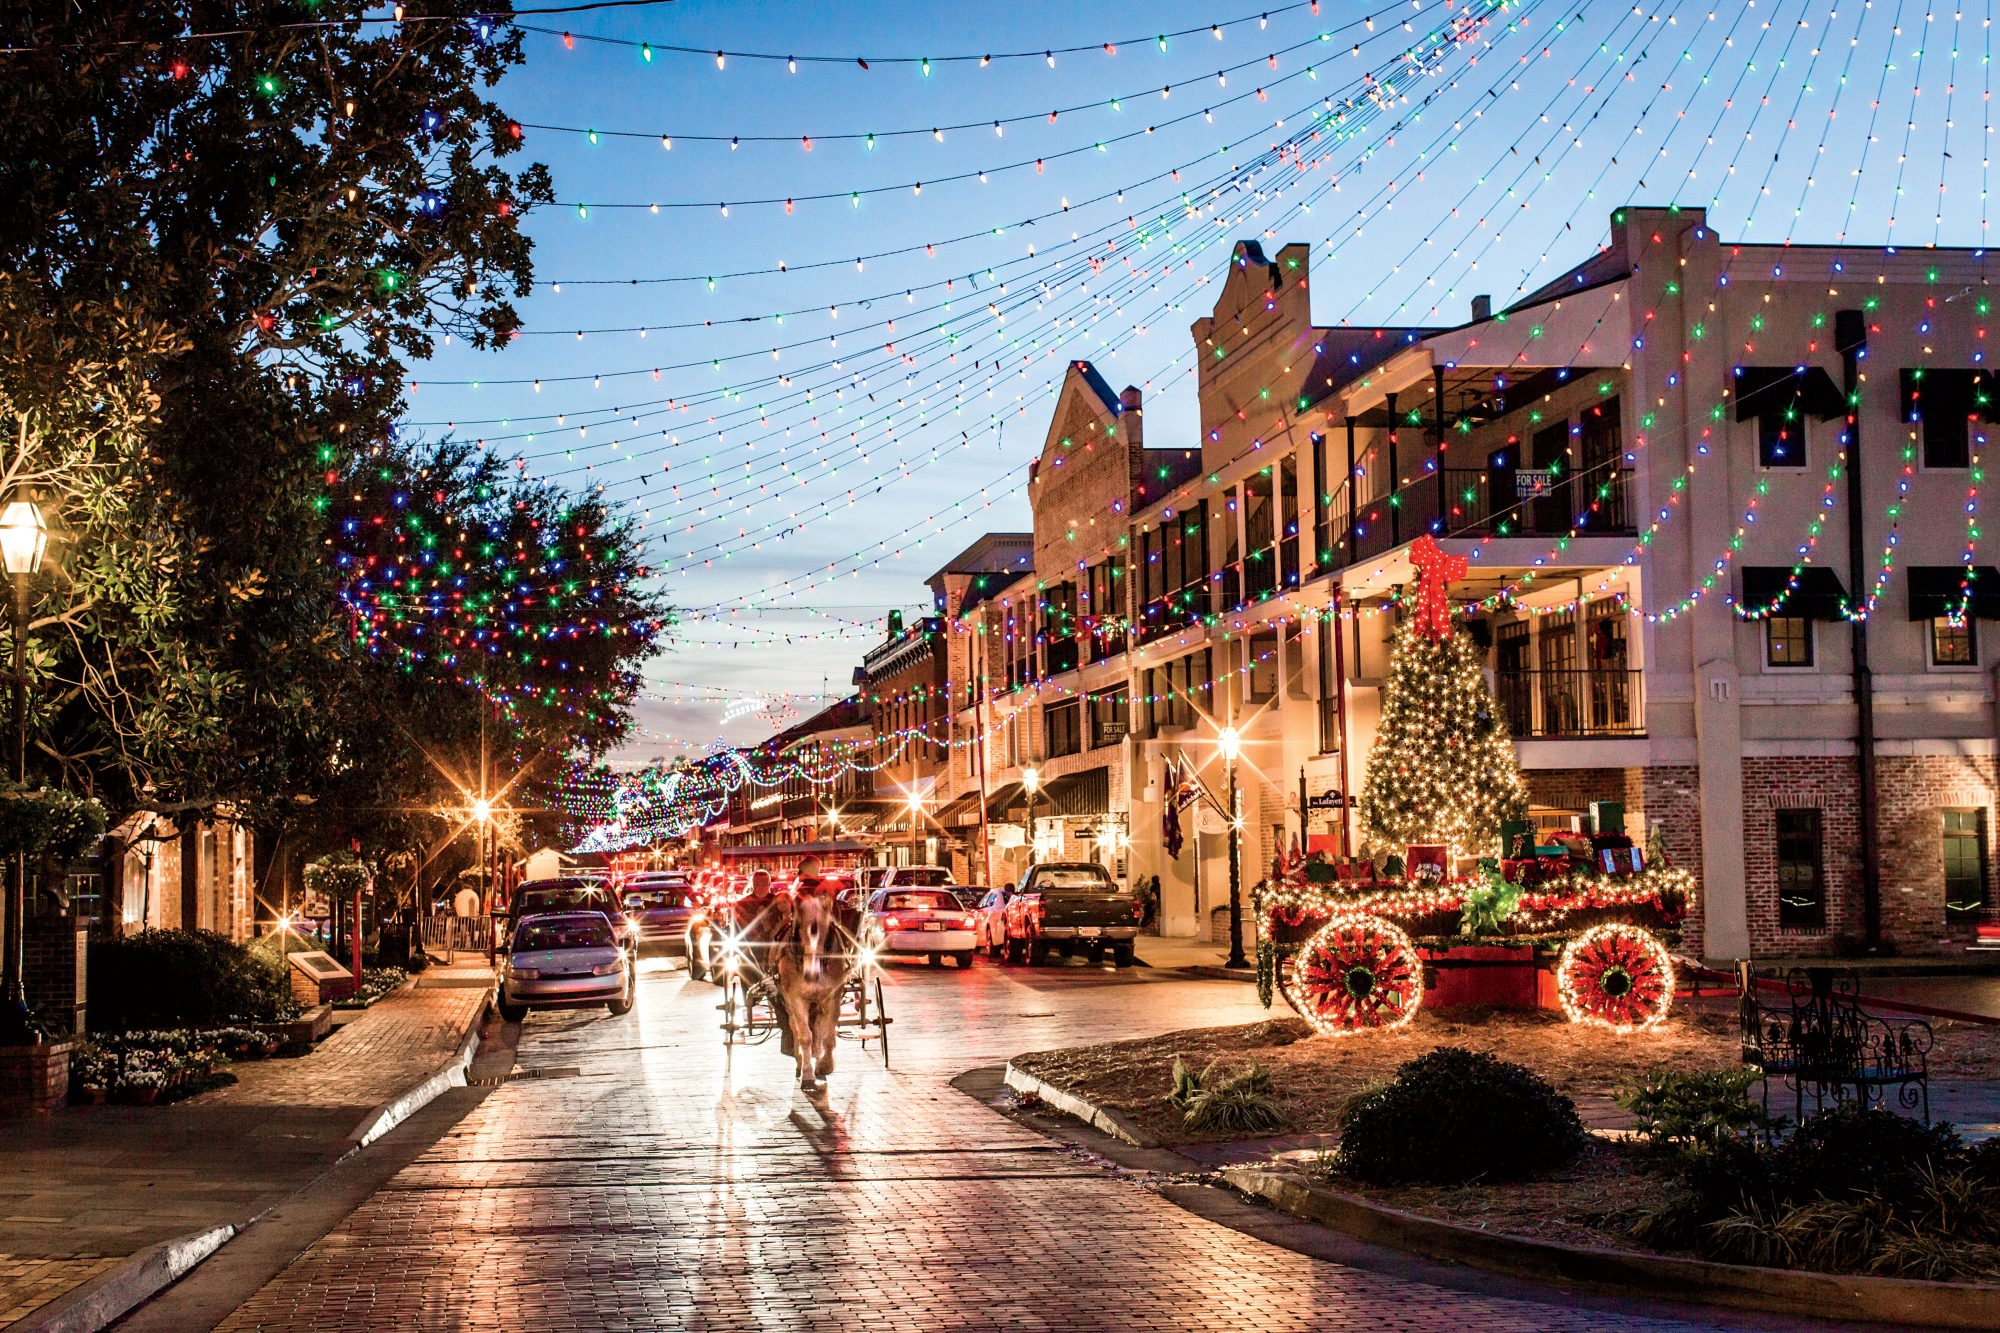 Savannah Georgia During Christmas 2021 The South Iacute S Best Historic Christmas Home Tours Southern Living